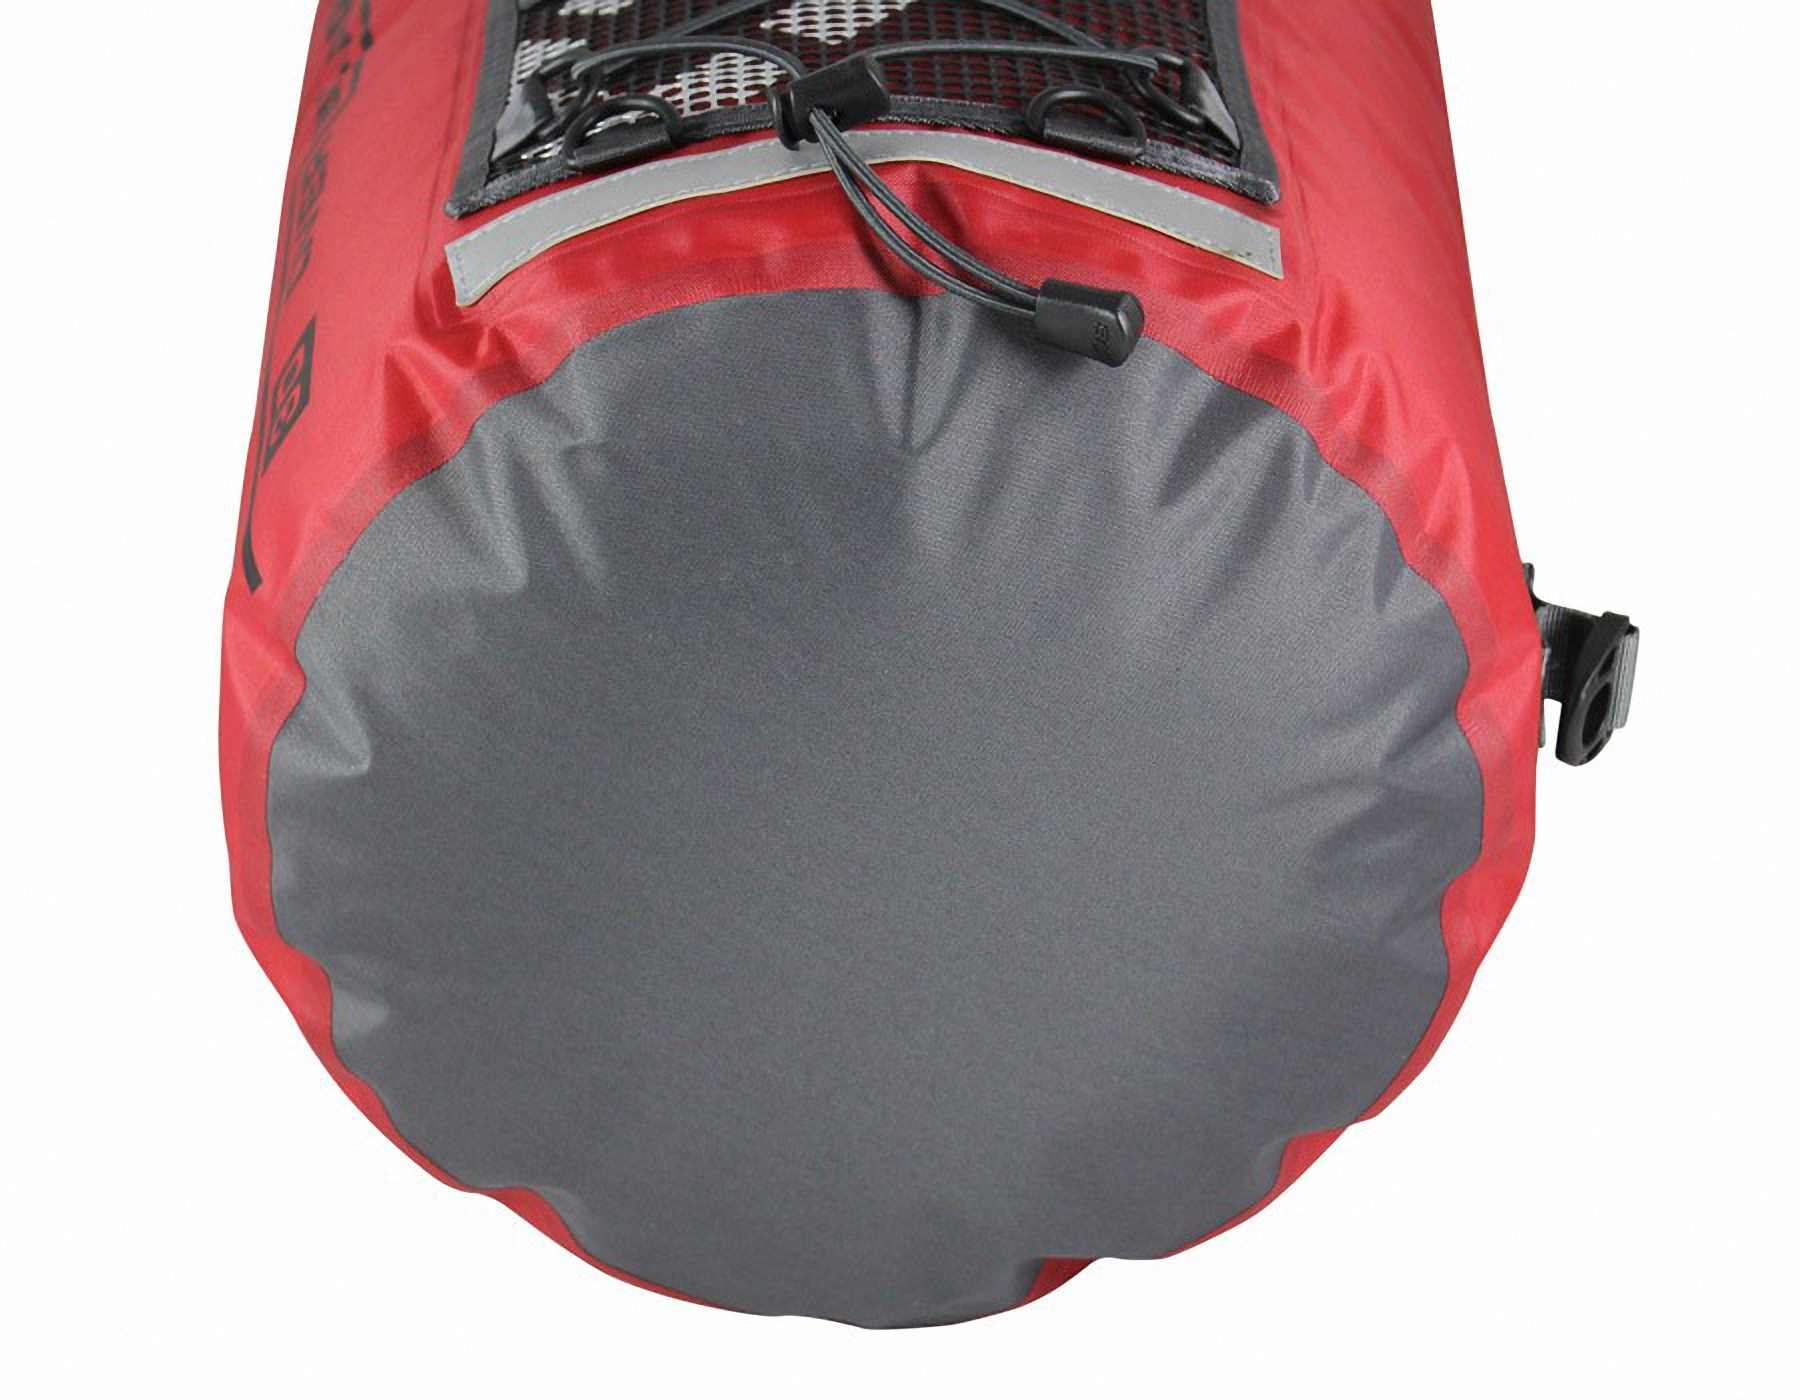 Водонепроницаемая сумка OverBoard OB1118R - Ultra-light Dry Tube Bag - 30L (Red) Фото 5